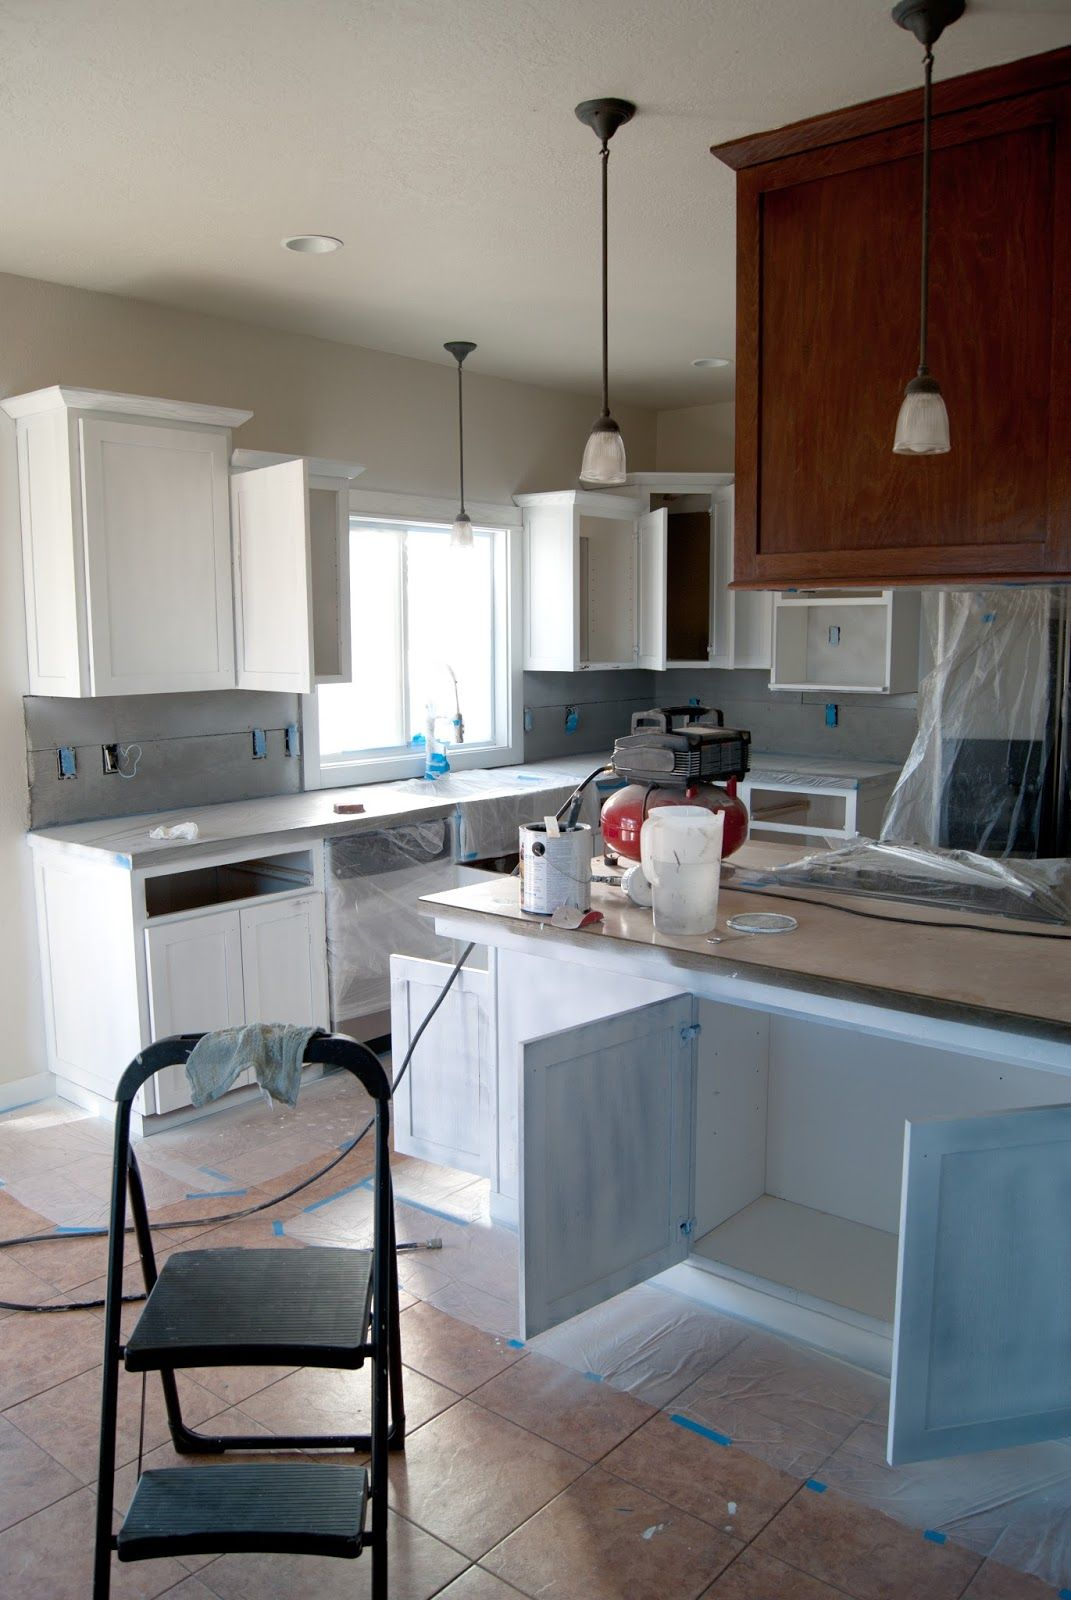 Painting the Kitchen Cabinets - Primer + Paint   Primer ...